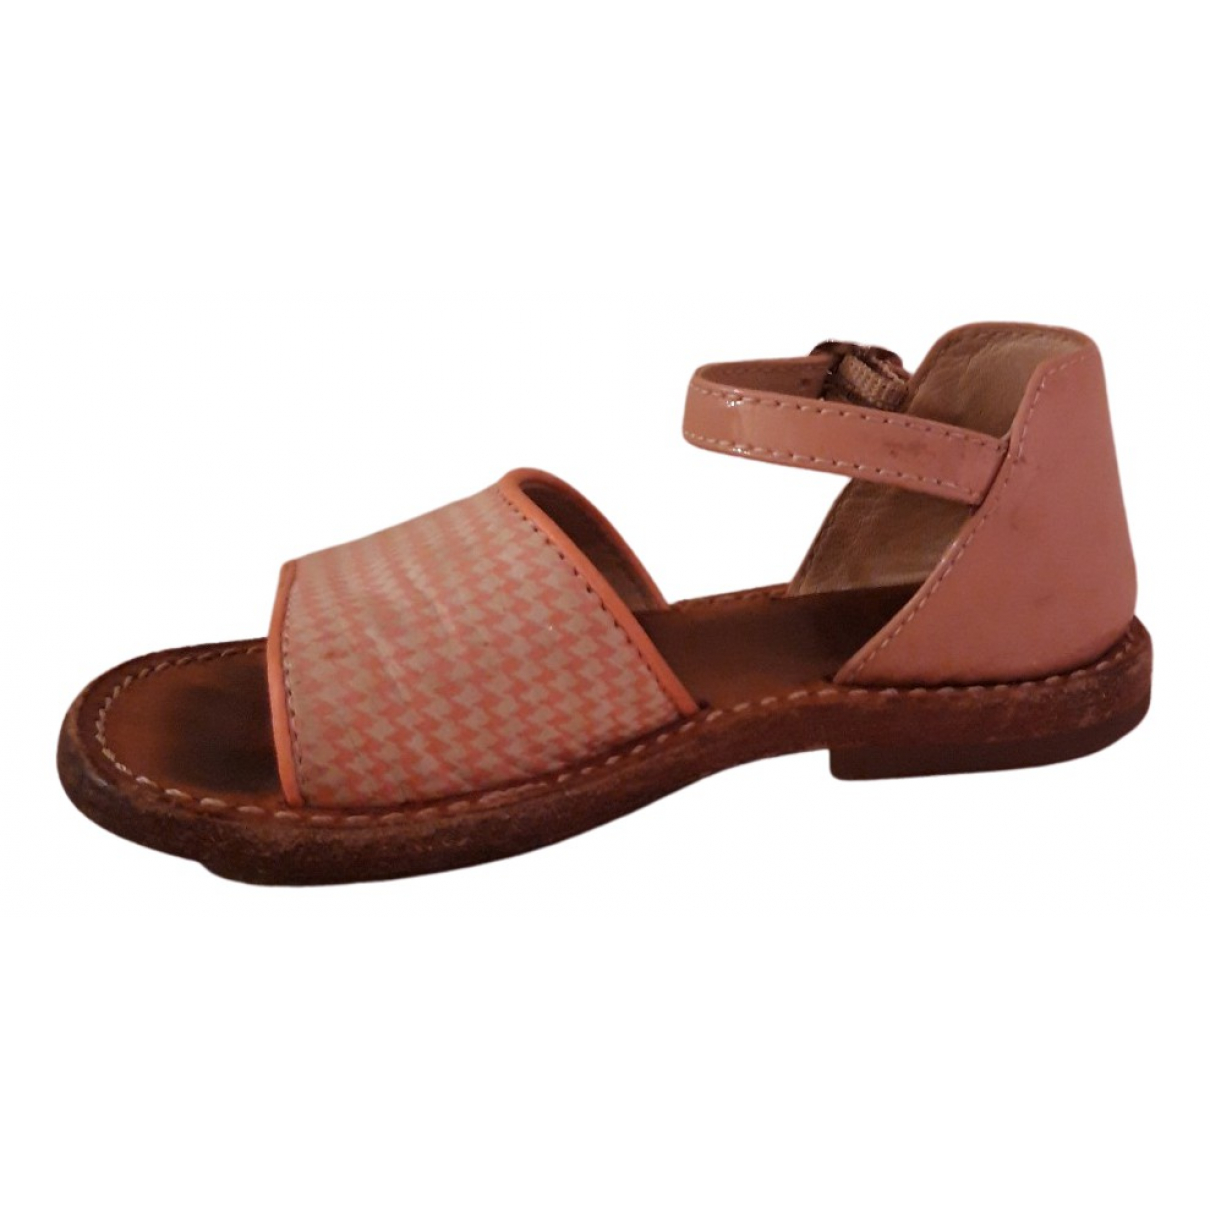 Gallucci N Pink Leather Sandals for Kids 23 FR